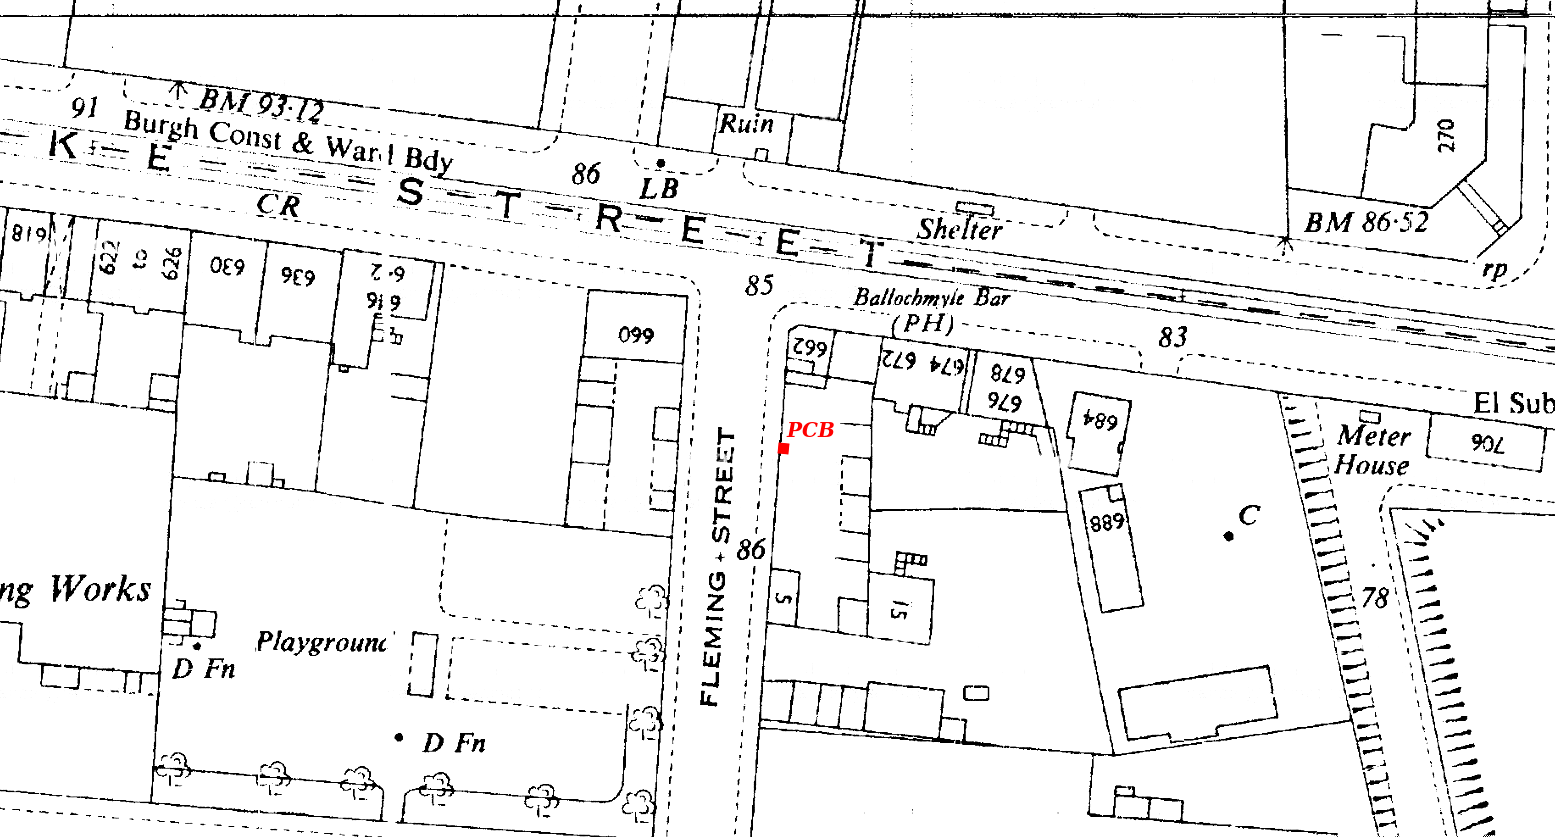 C31--Glasgow Mark 2-Fleming St at Duke St--1951-1954 OS Map Extract 1-1250 (Site in red).png